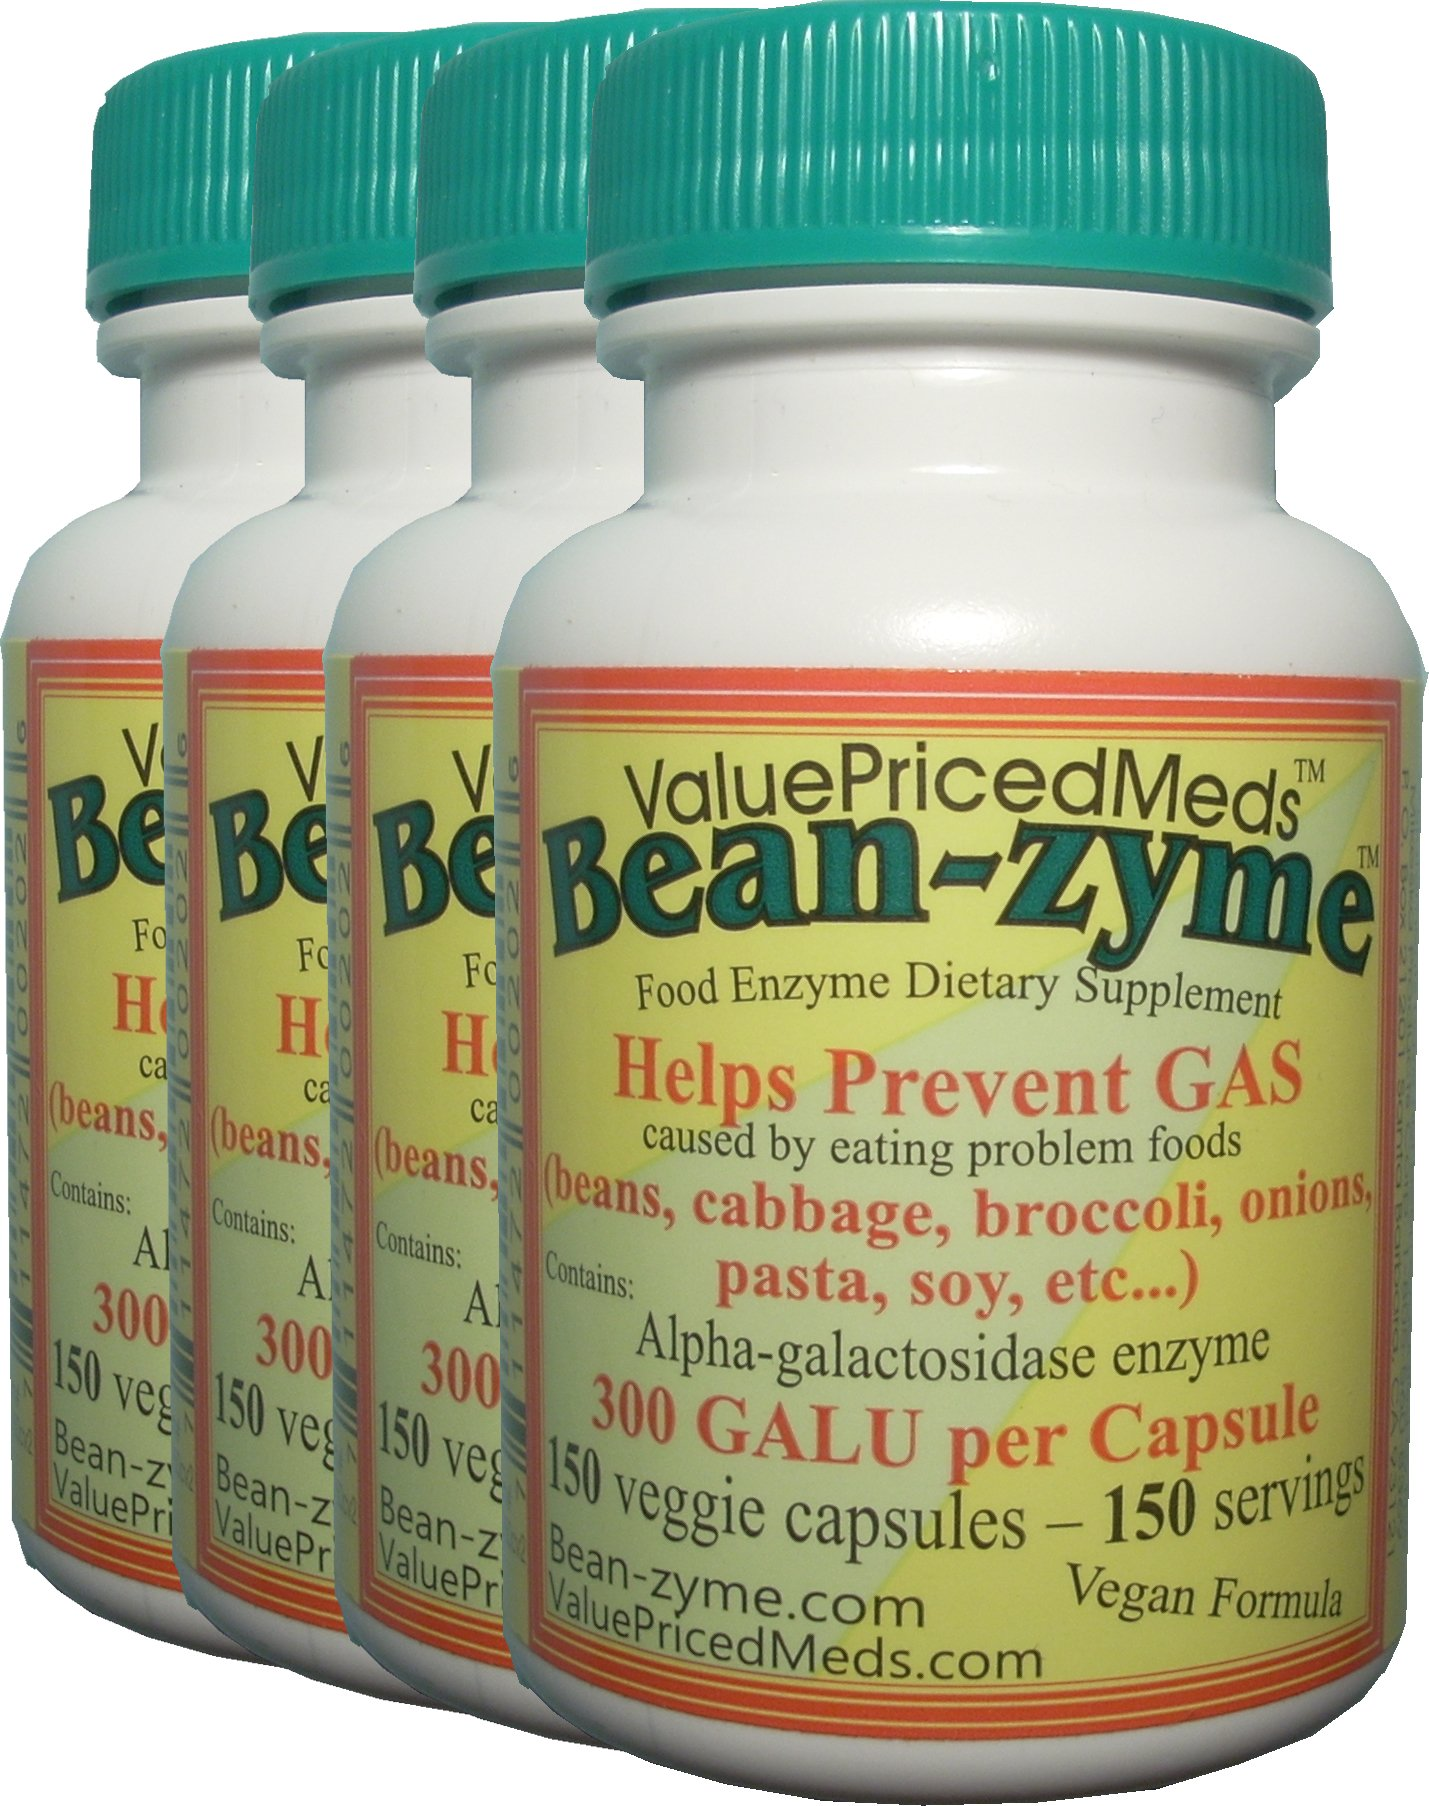 Bean-zyme VEGAN anti-gas 150 Capsules per bottle 4 Pack (600 capsules total). 300 GALU/cap compare to Beano 150 GALU/cap by ValuePricedMeds